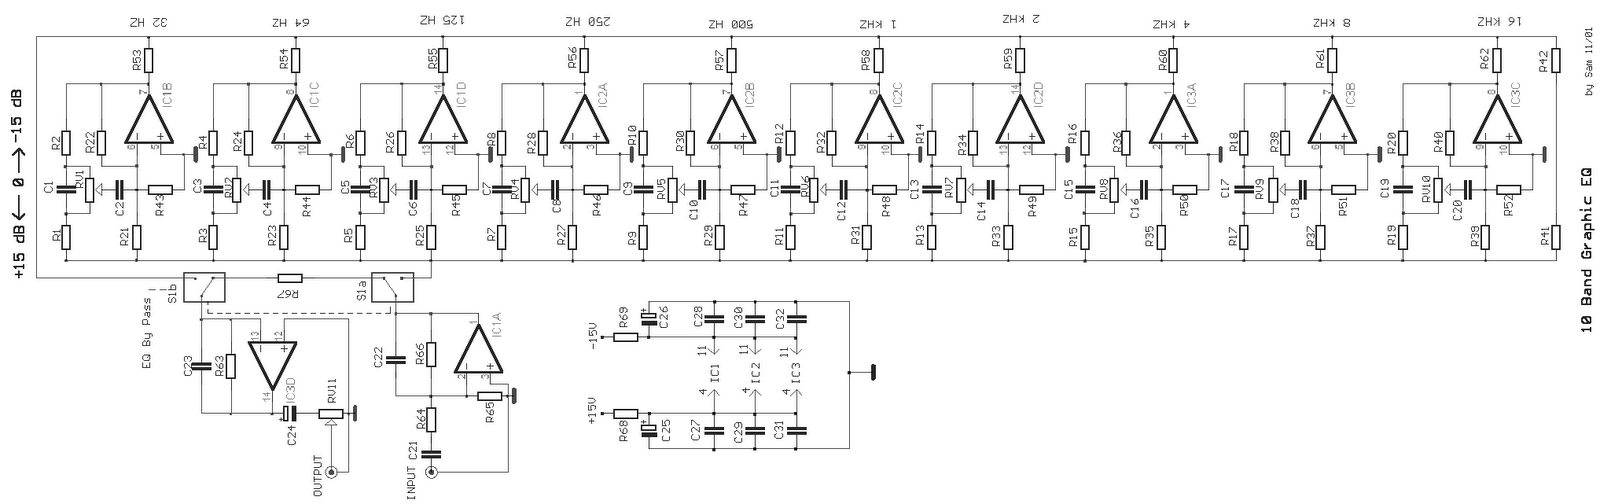 hight resolution of band wiring diagram blog wiring diagram band pass subwoofer wiring diagram band wiring diagram